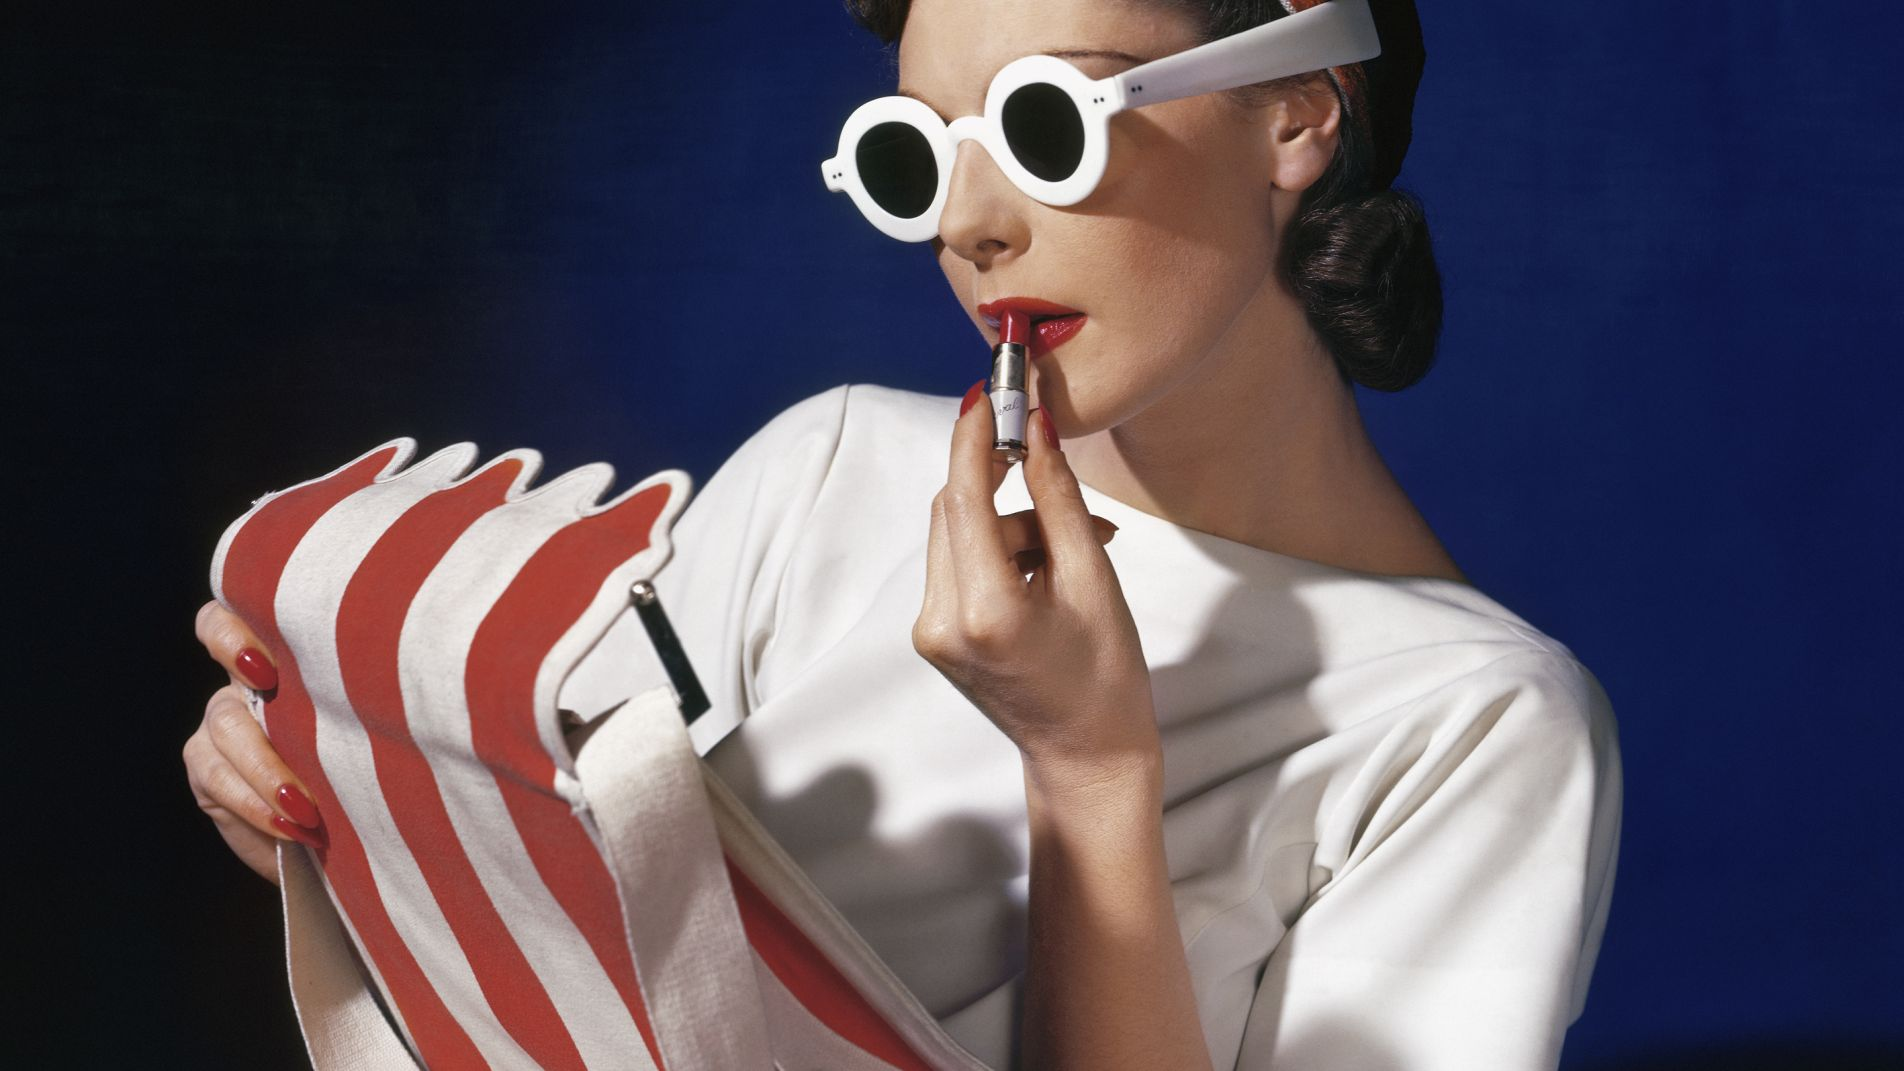 Muriel Maxwell, American Vogue cover, 1 July 1939 © Condé Nast / Horst Estate Muriel Maxwell, American Vogue cover, 1 July 1939 © Condé Nast / Horst Estate